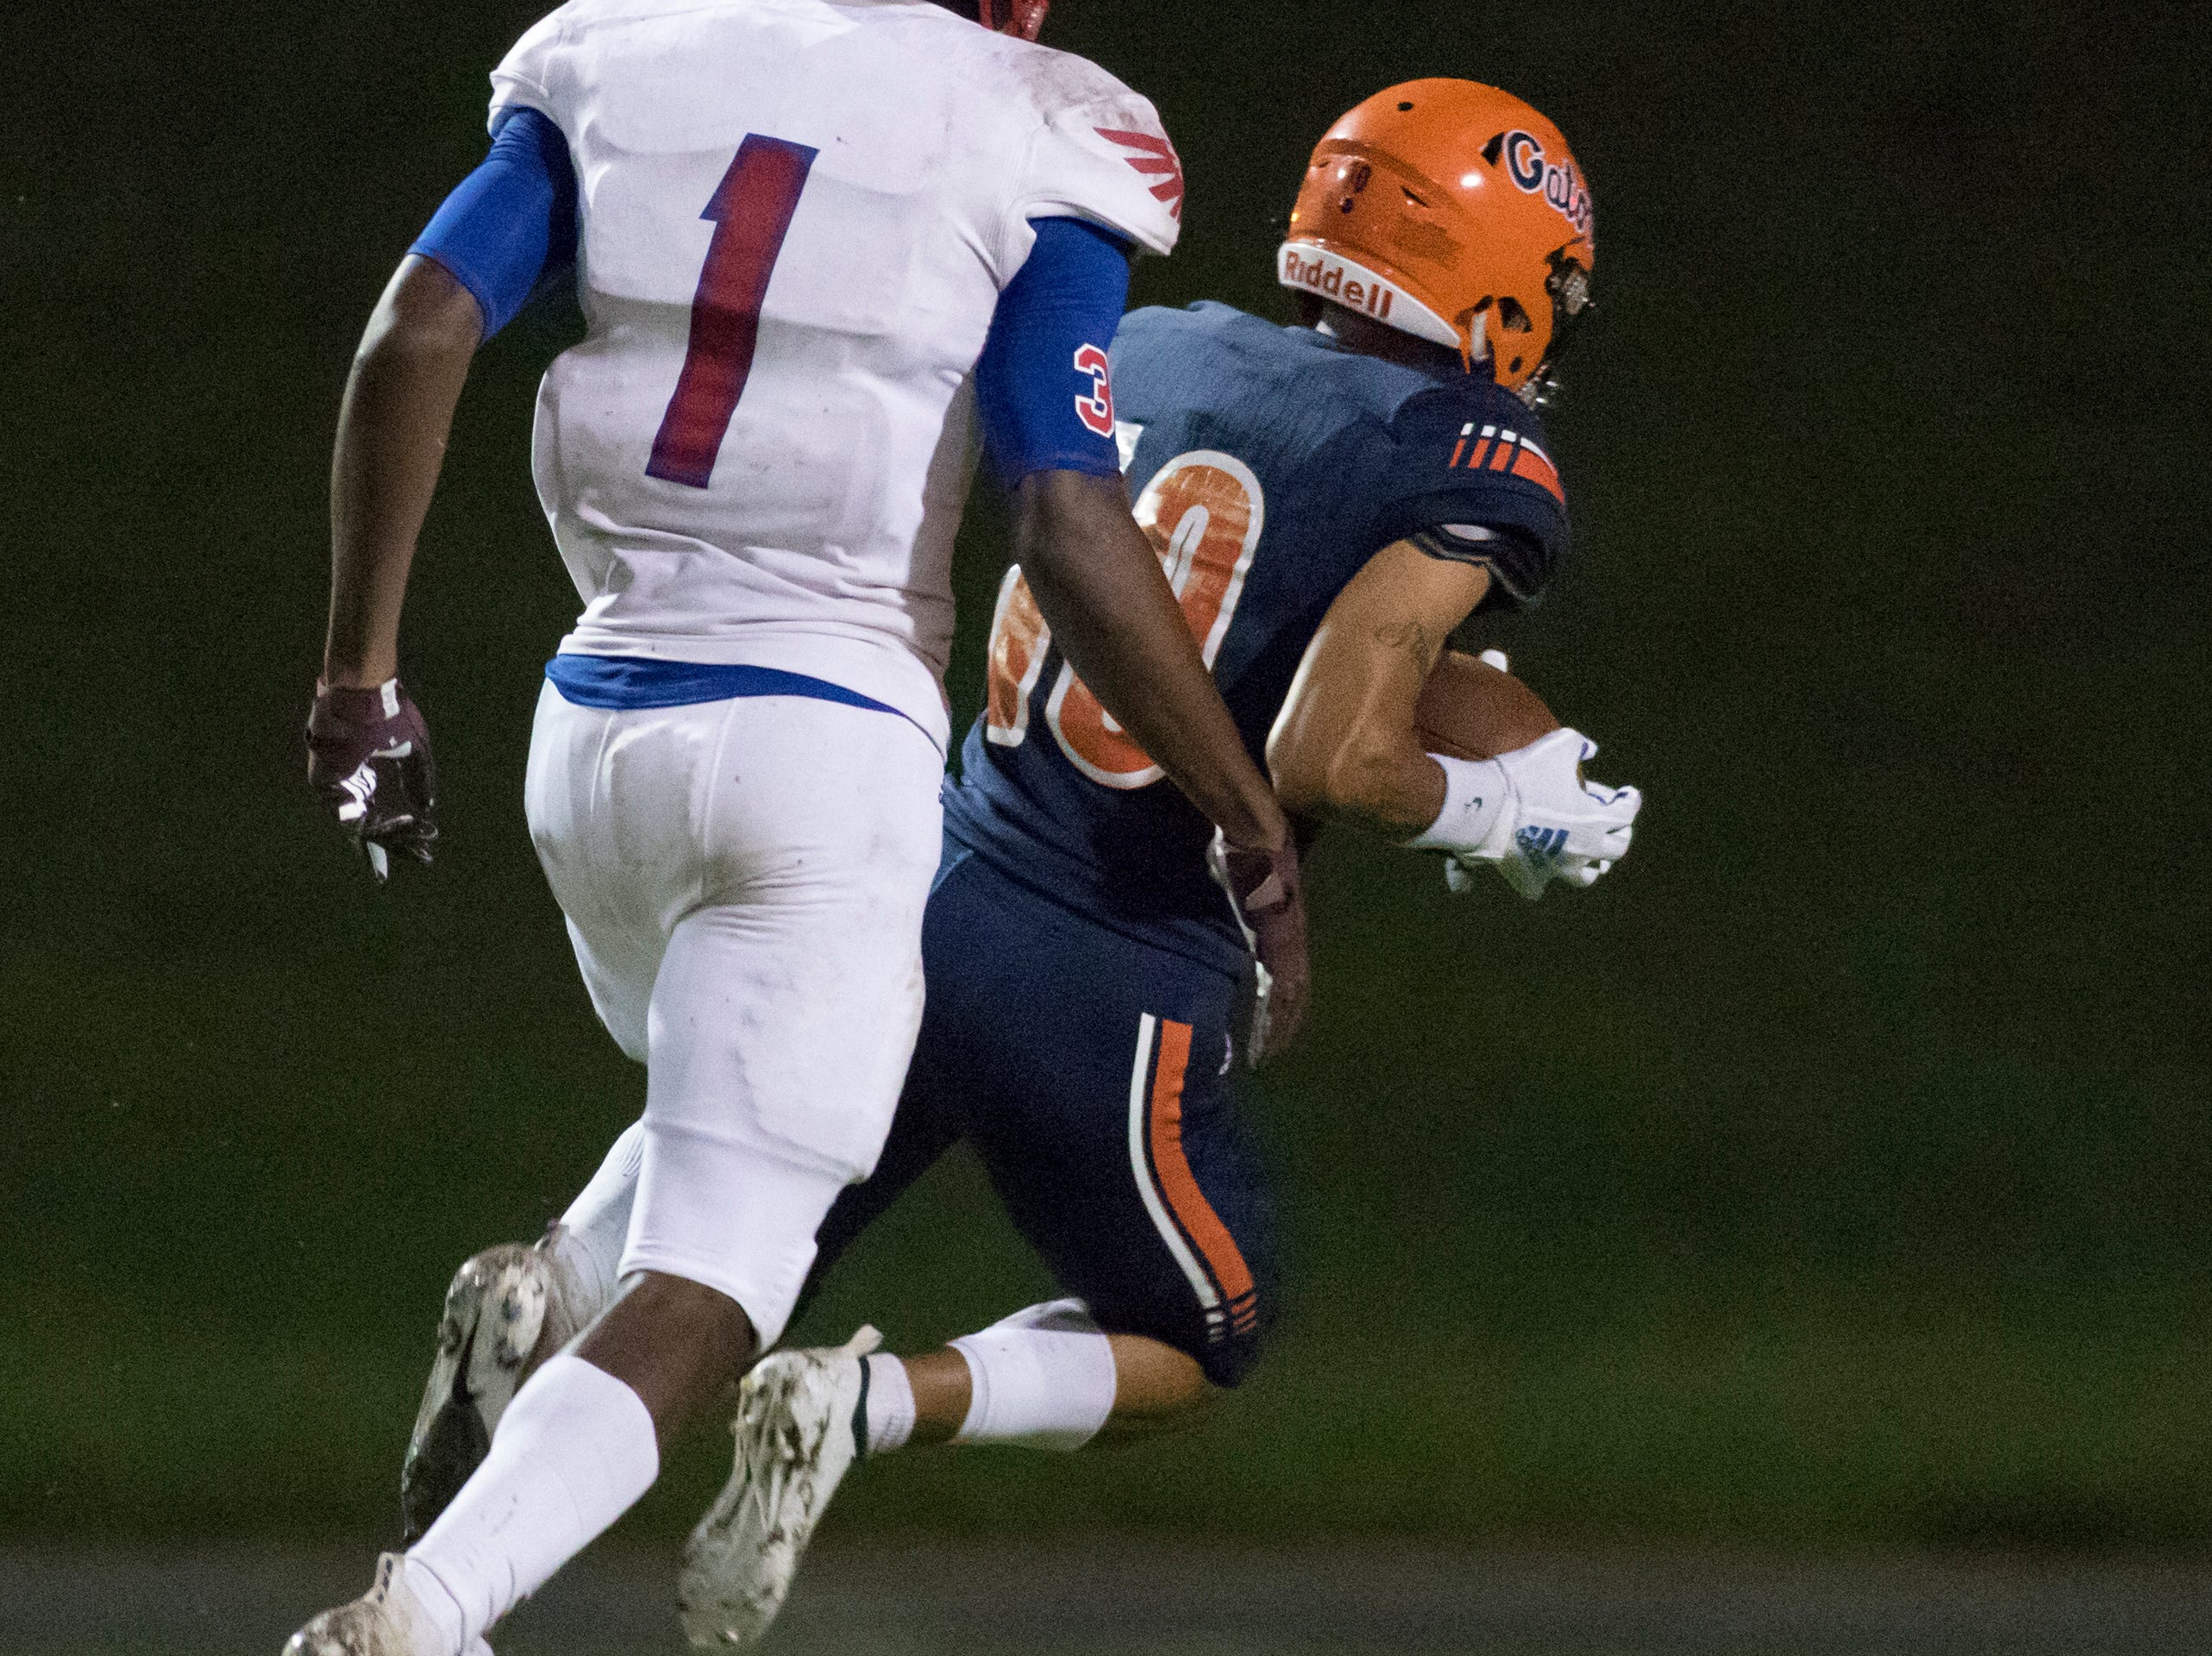 Martin Emerson (1) watches as JoJo Blackmon (10) takes a long pass in for a touchdown leading to a 7-0 score during the Pine Forest vs Escambia football game at Escambia High School in Pensacola on Friday, September 28, 2018.